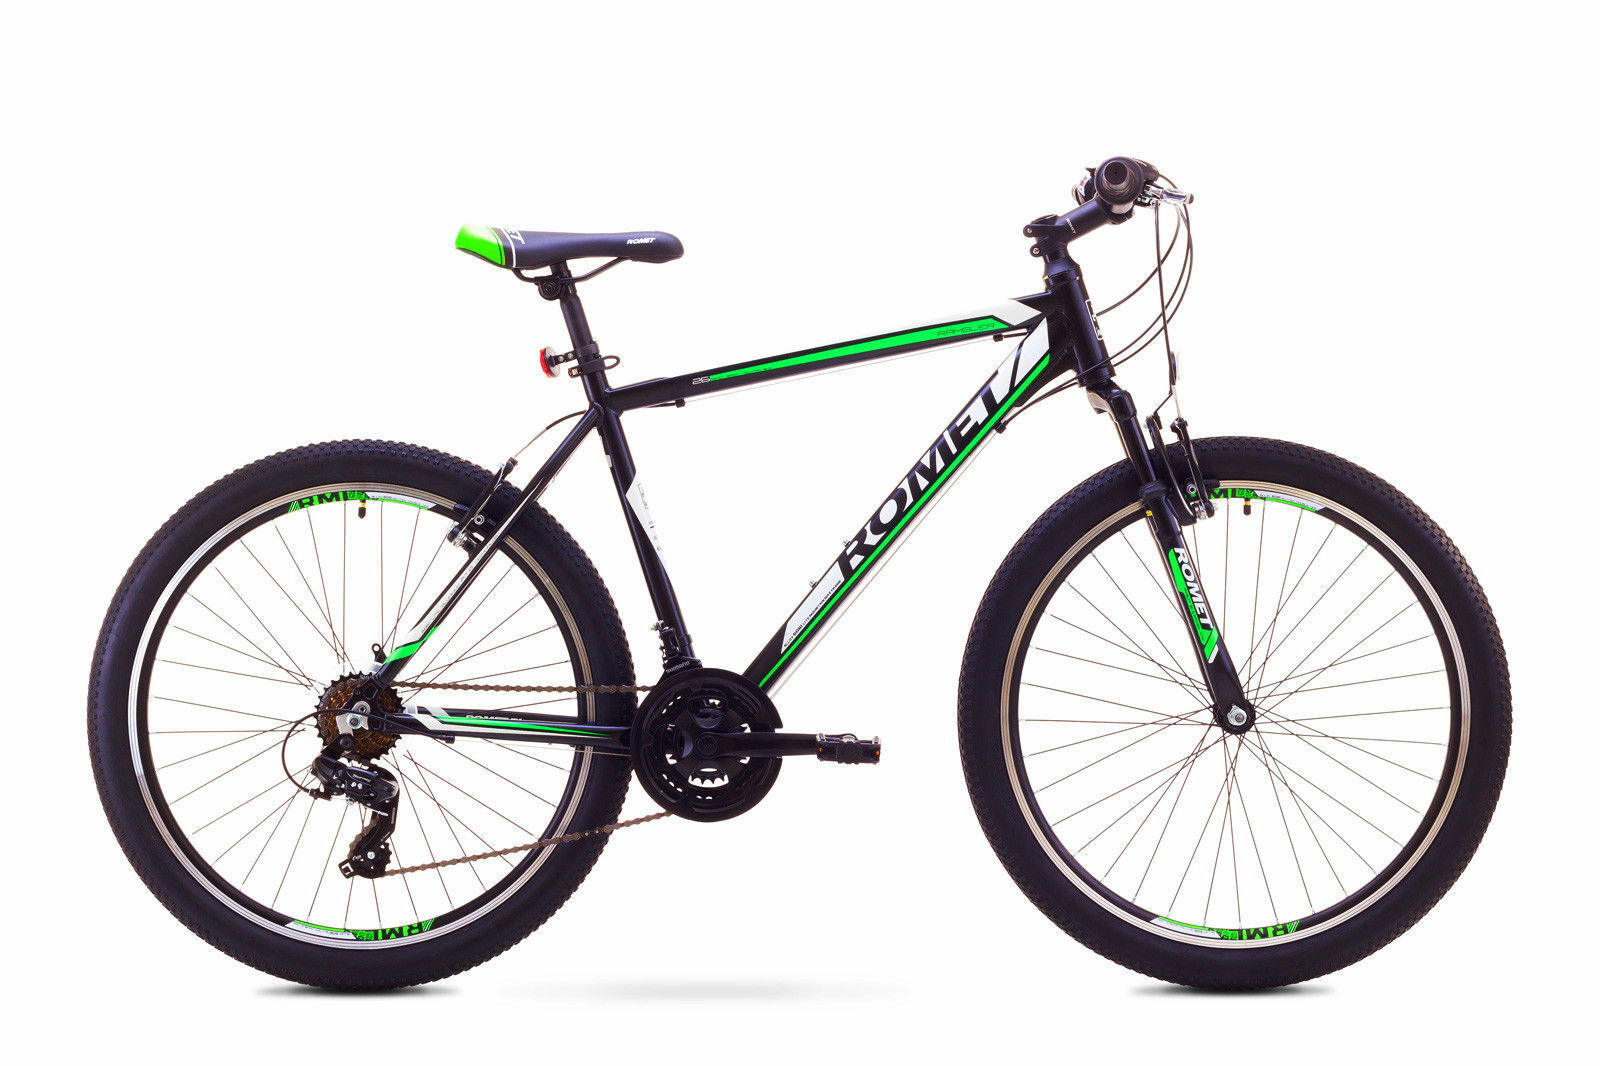 26 zoll mountainbike alurahmen 21 gang shimano. Black Bedroom Furniture Sets. Home Design Ideas